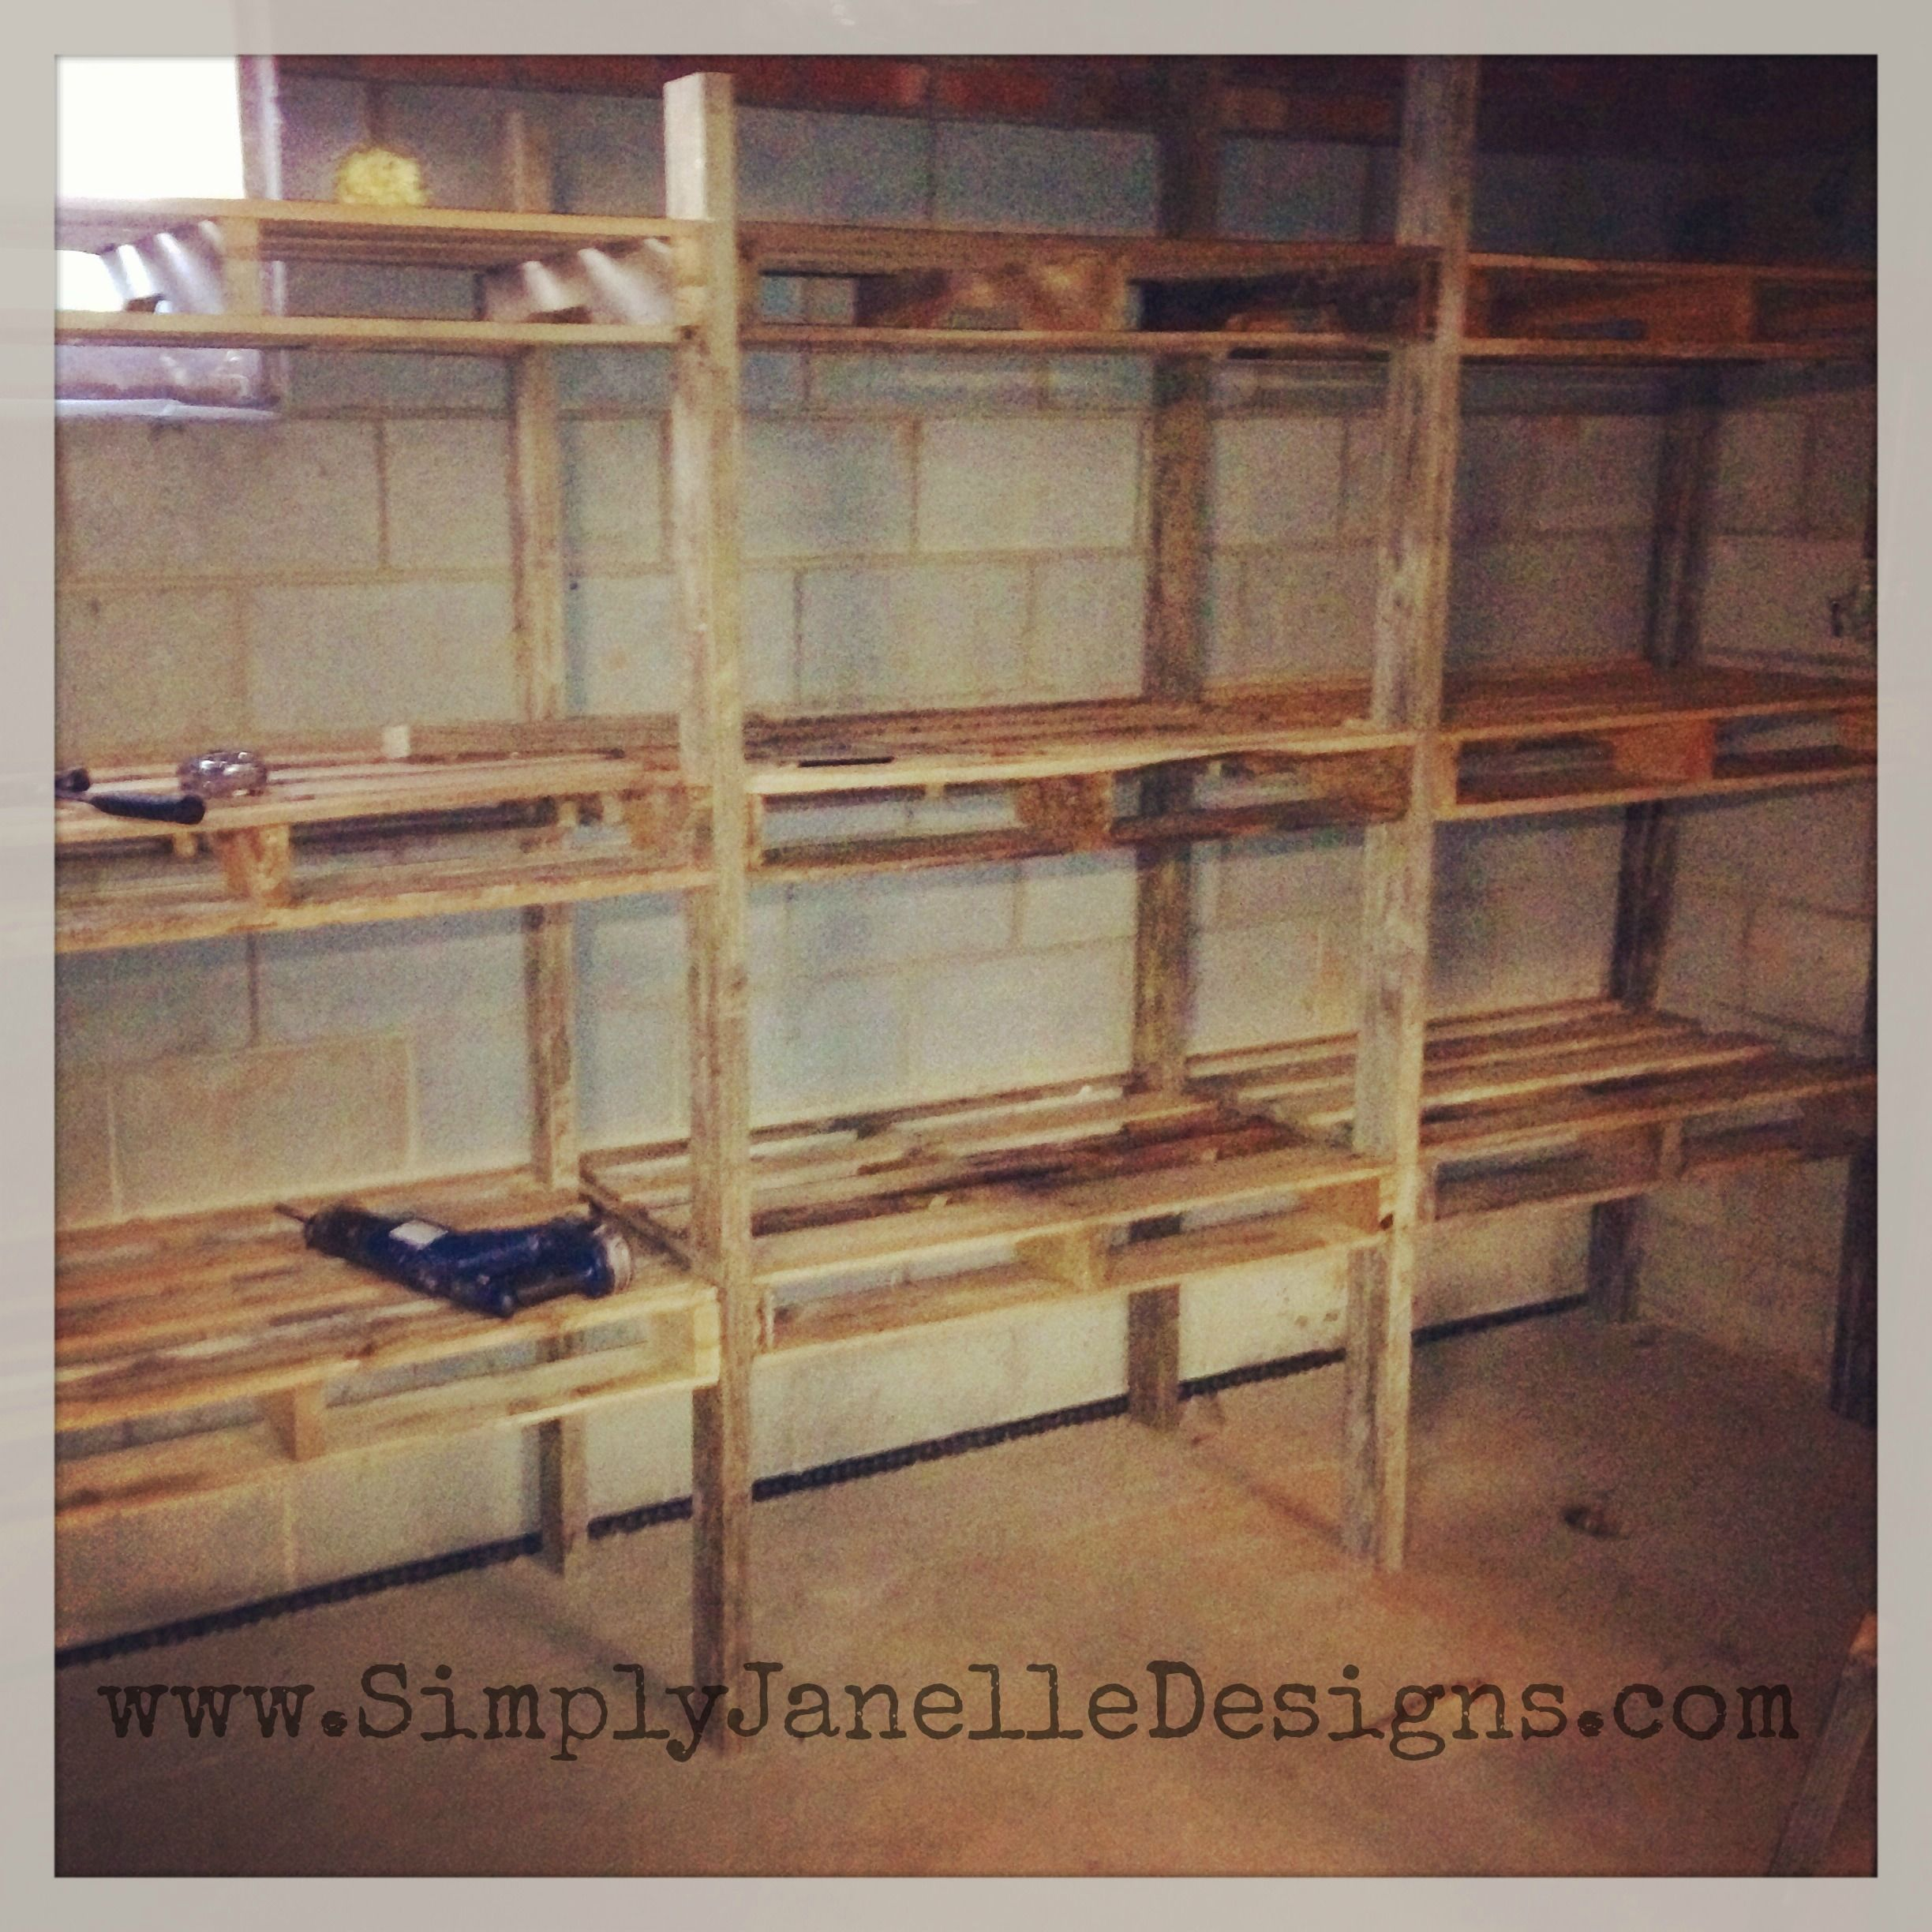 Pallet shelves in our basement simply janelle designs Pallet ideas